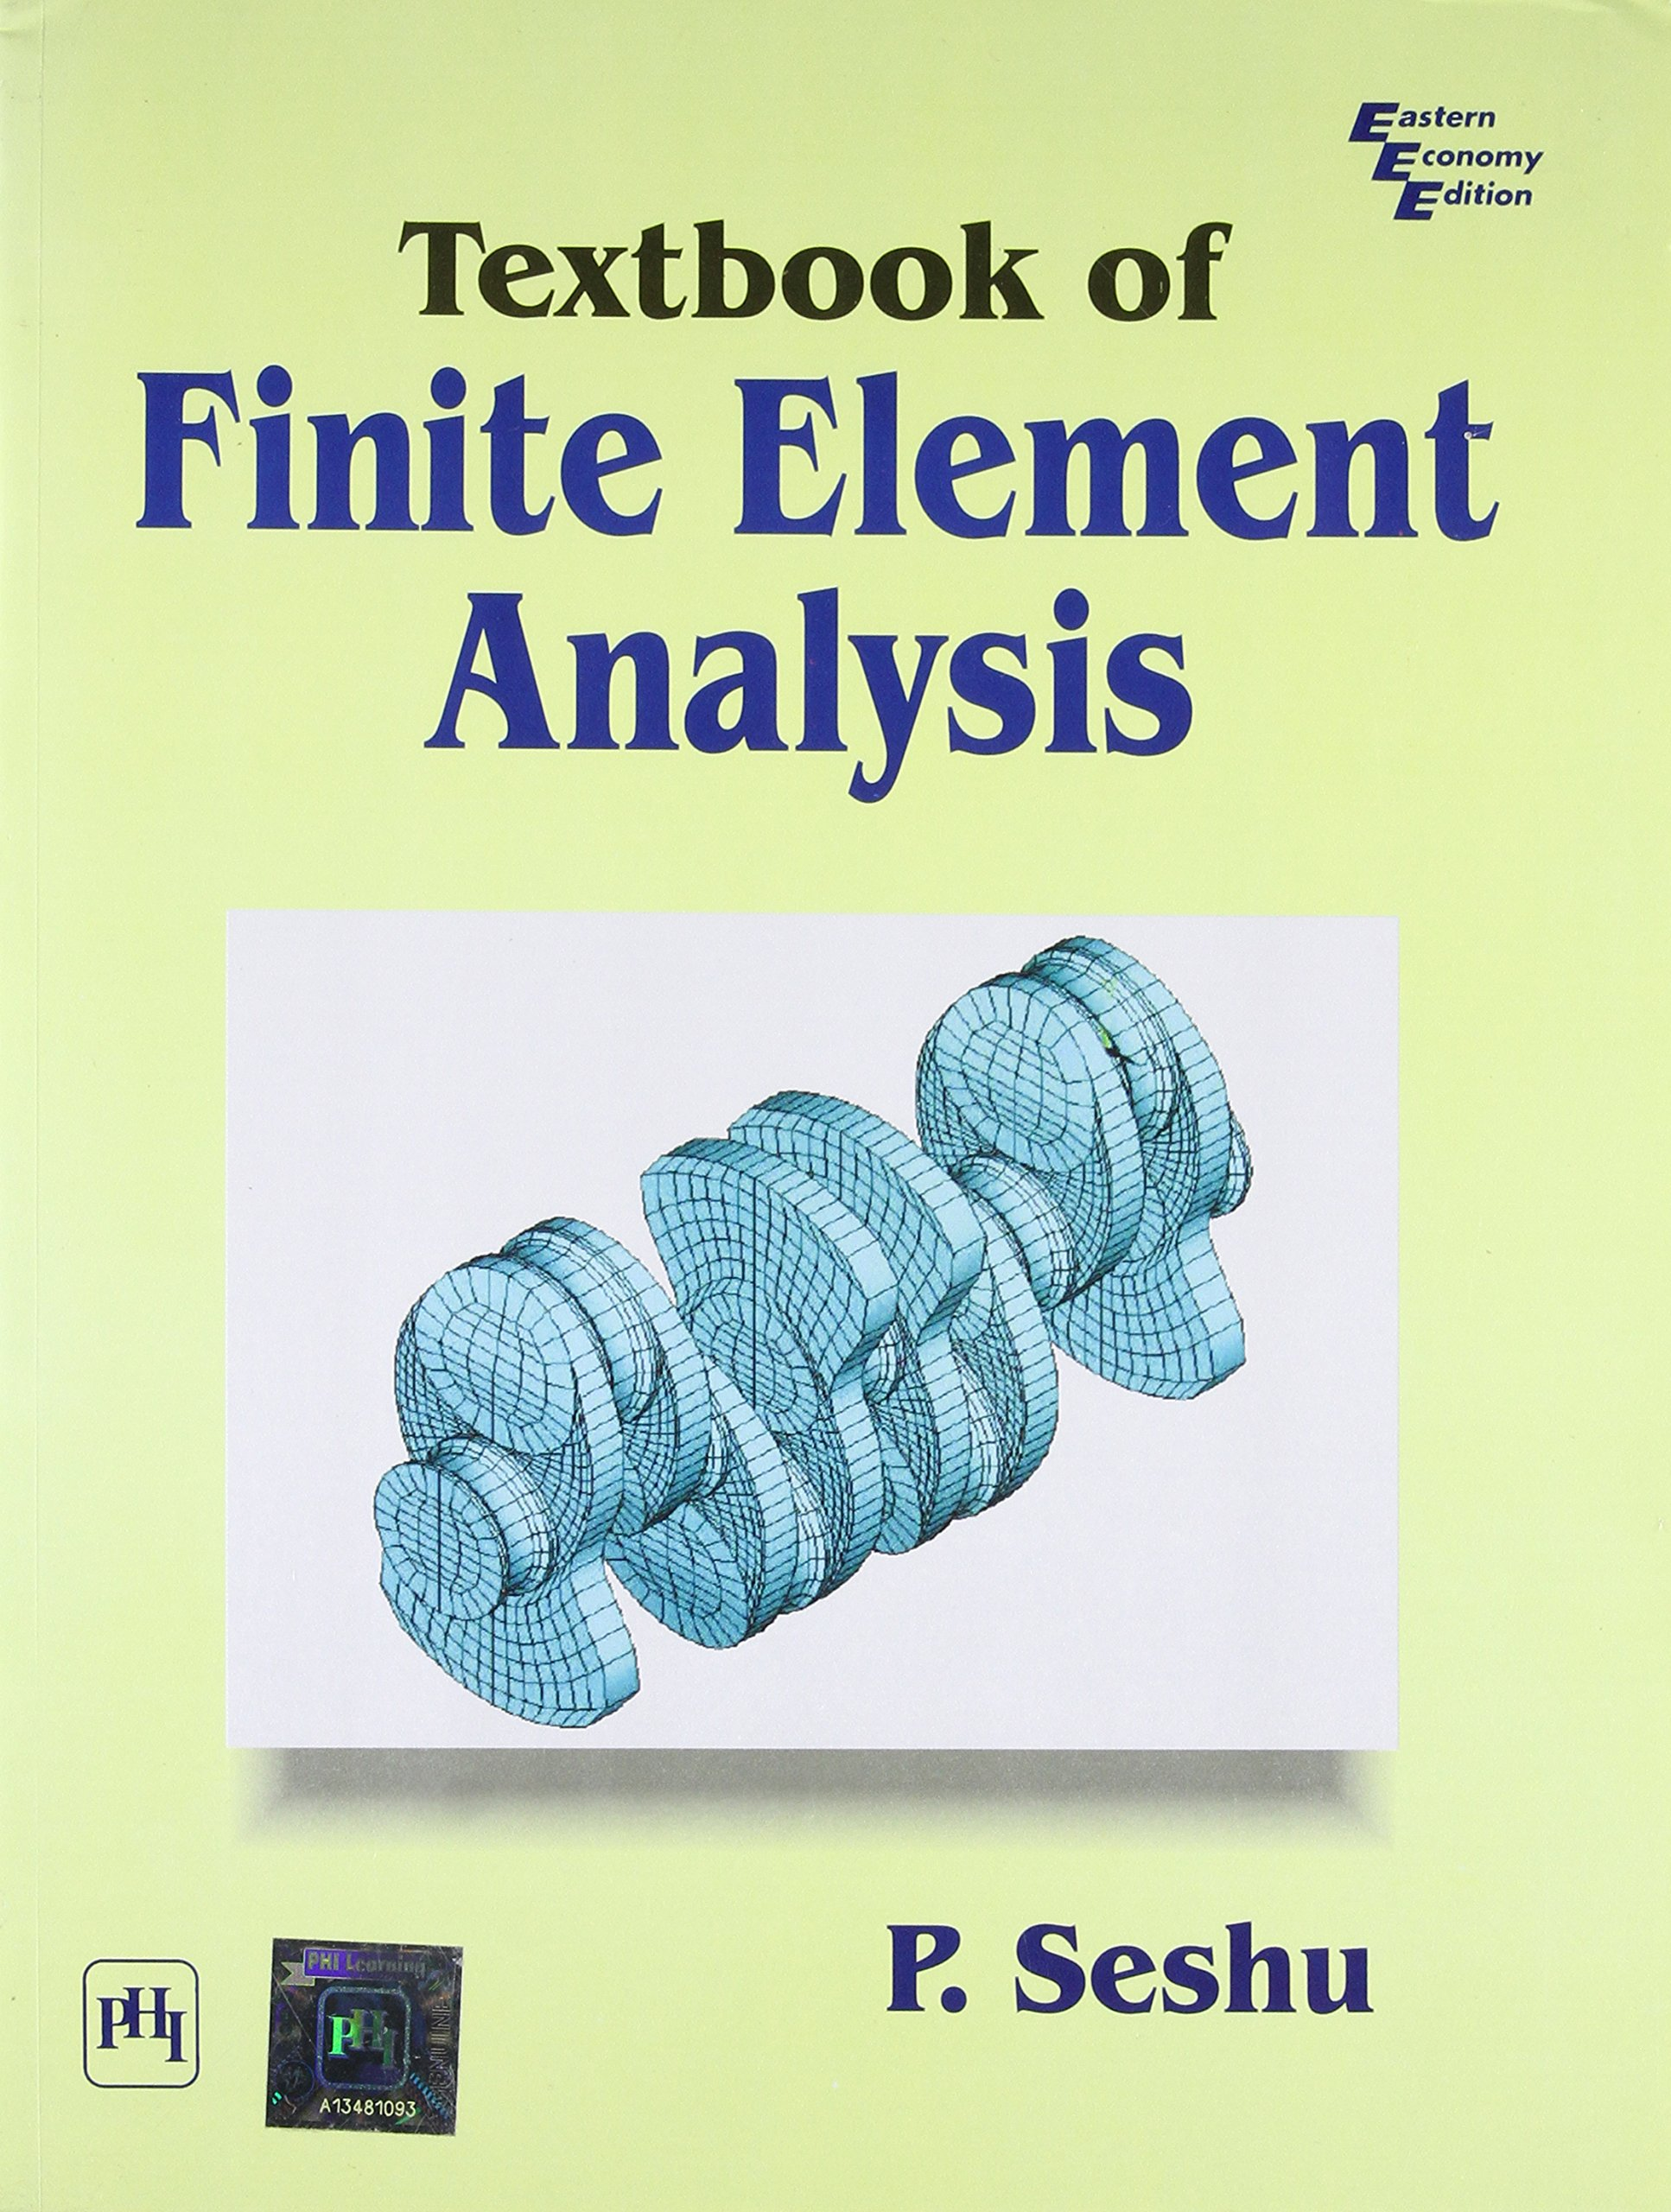 Practical Finite Element Analysis Book Free Wiring Library Porsche 914 Engine Dolly Diagram Buy Textbook Of Online At Low Prices In India